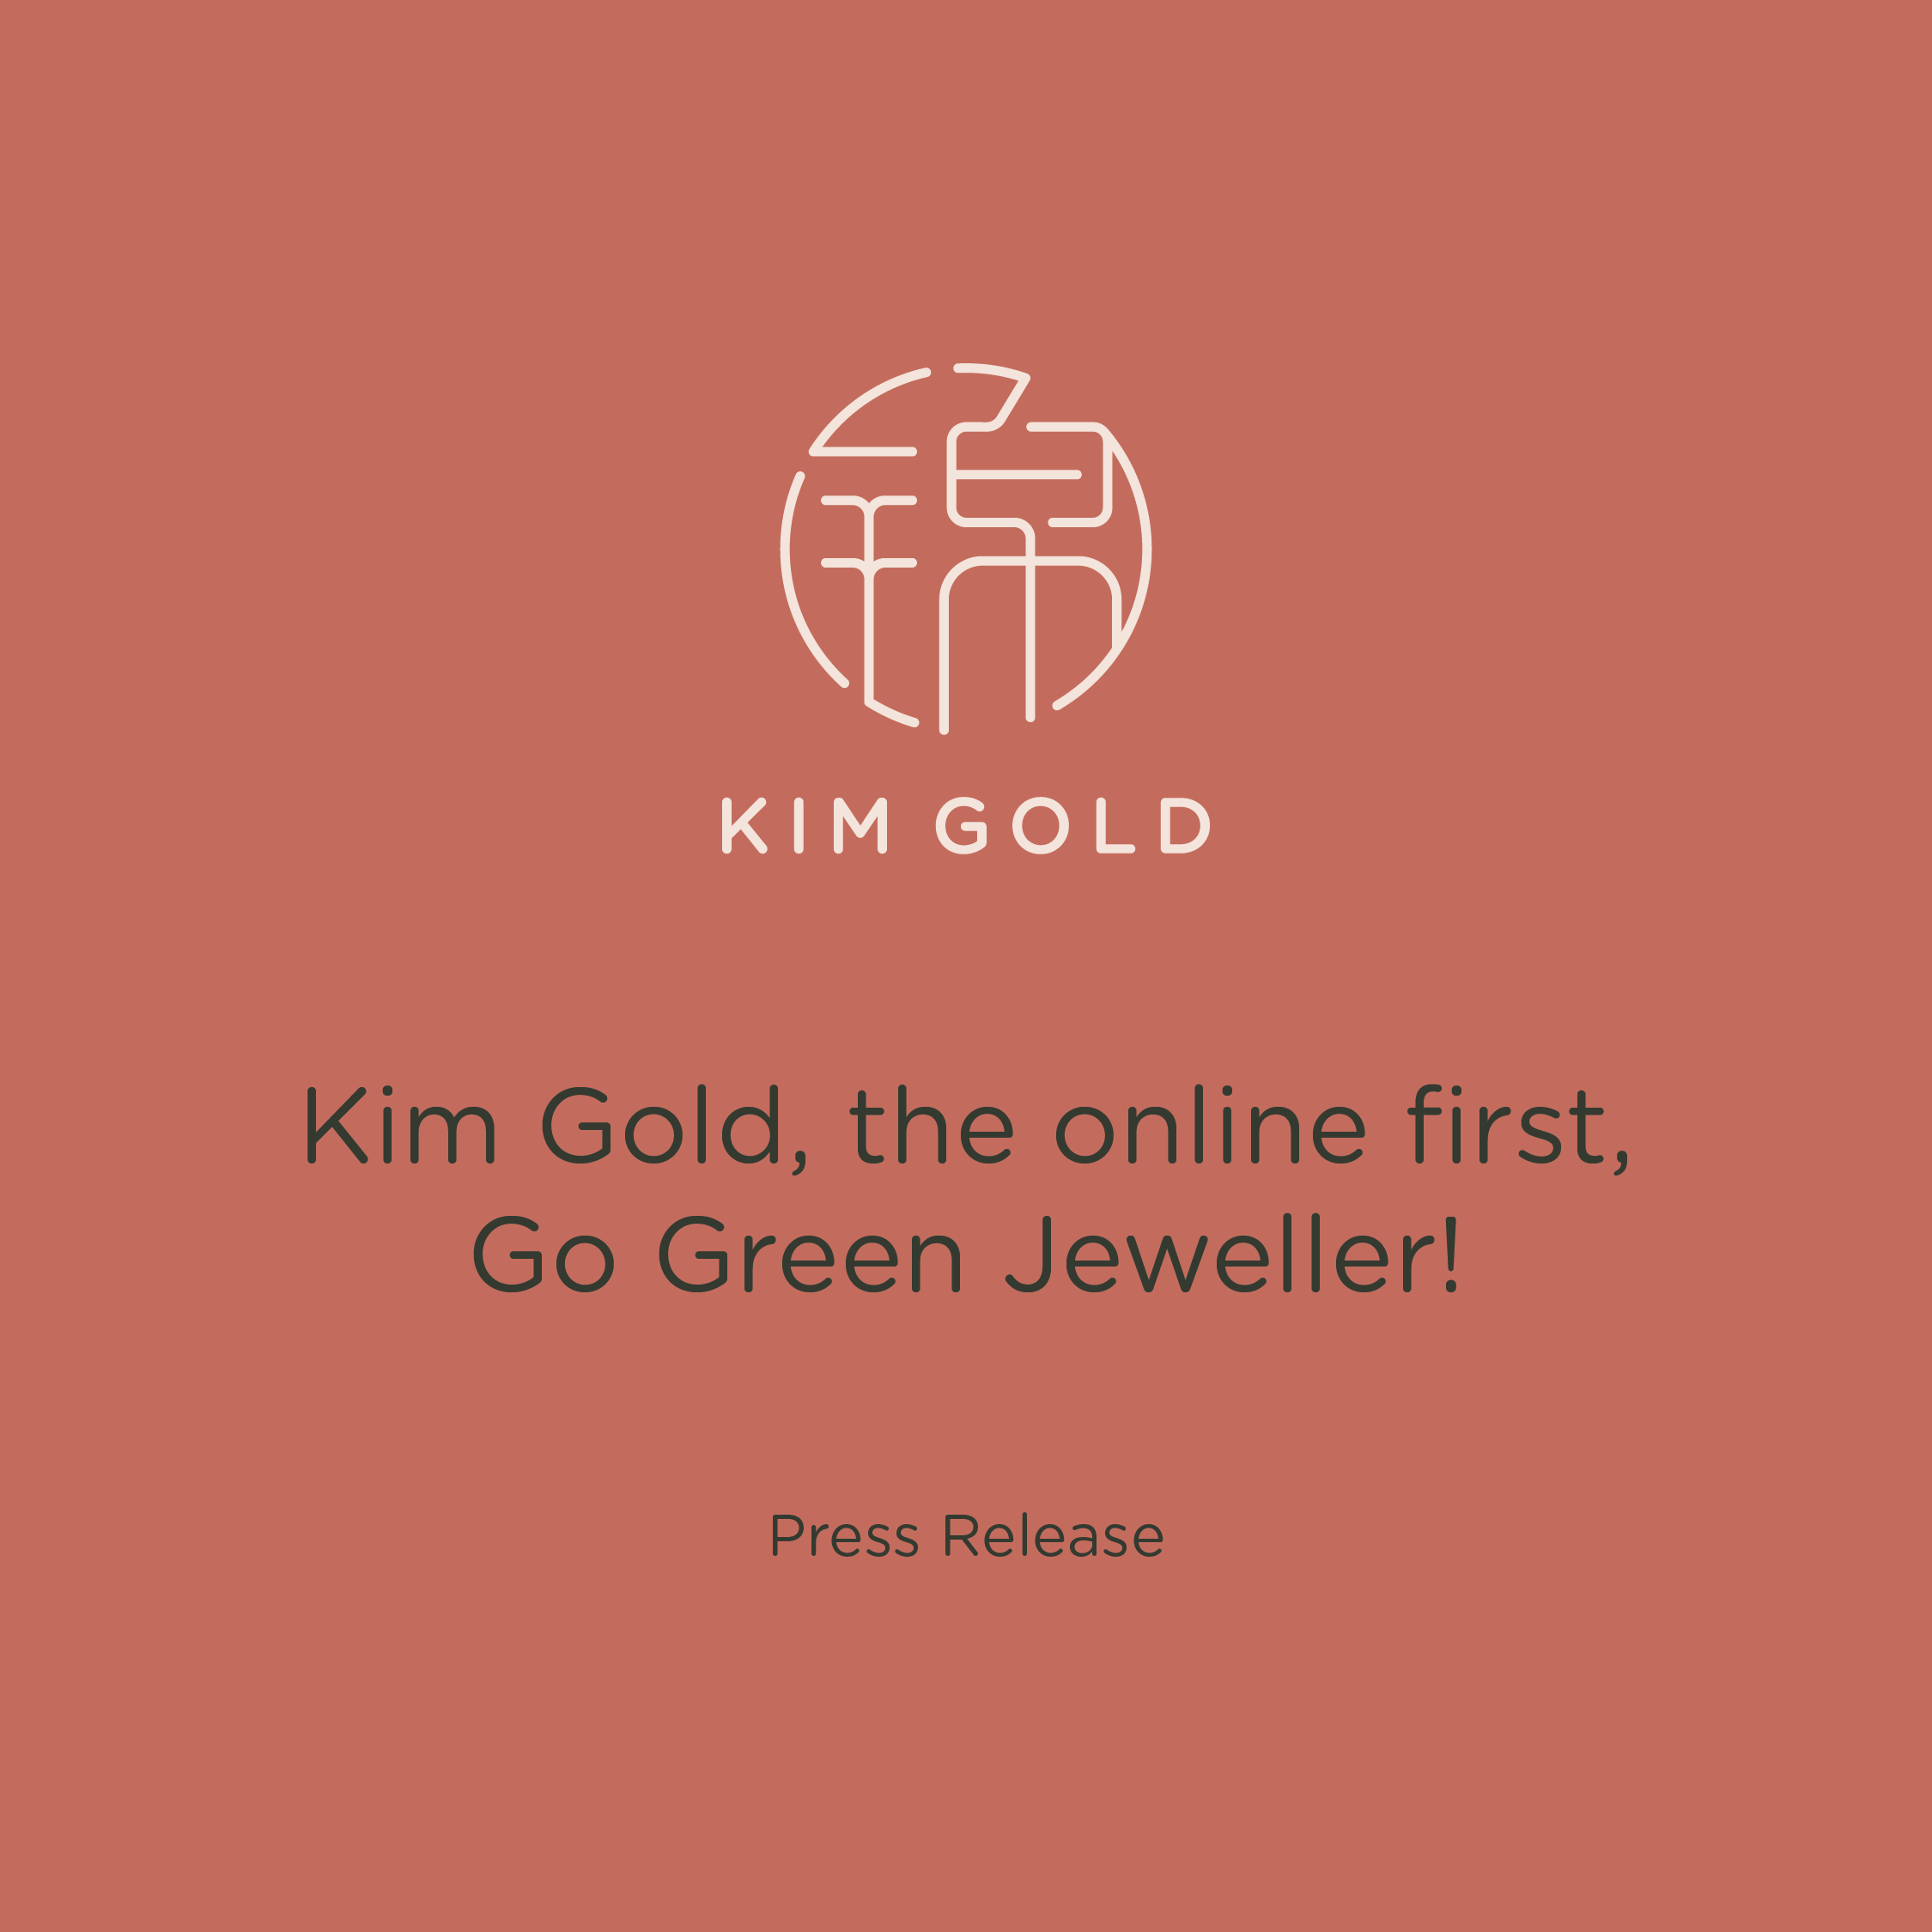 Kim Gold, with a focus on sustainability, renewability and transparency in pricing, launches her pre-loved jewellery brand.